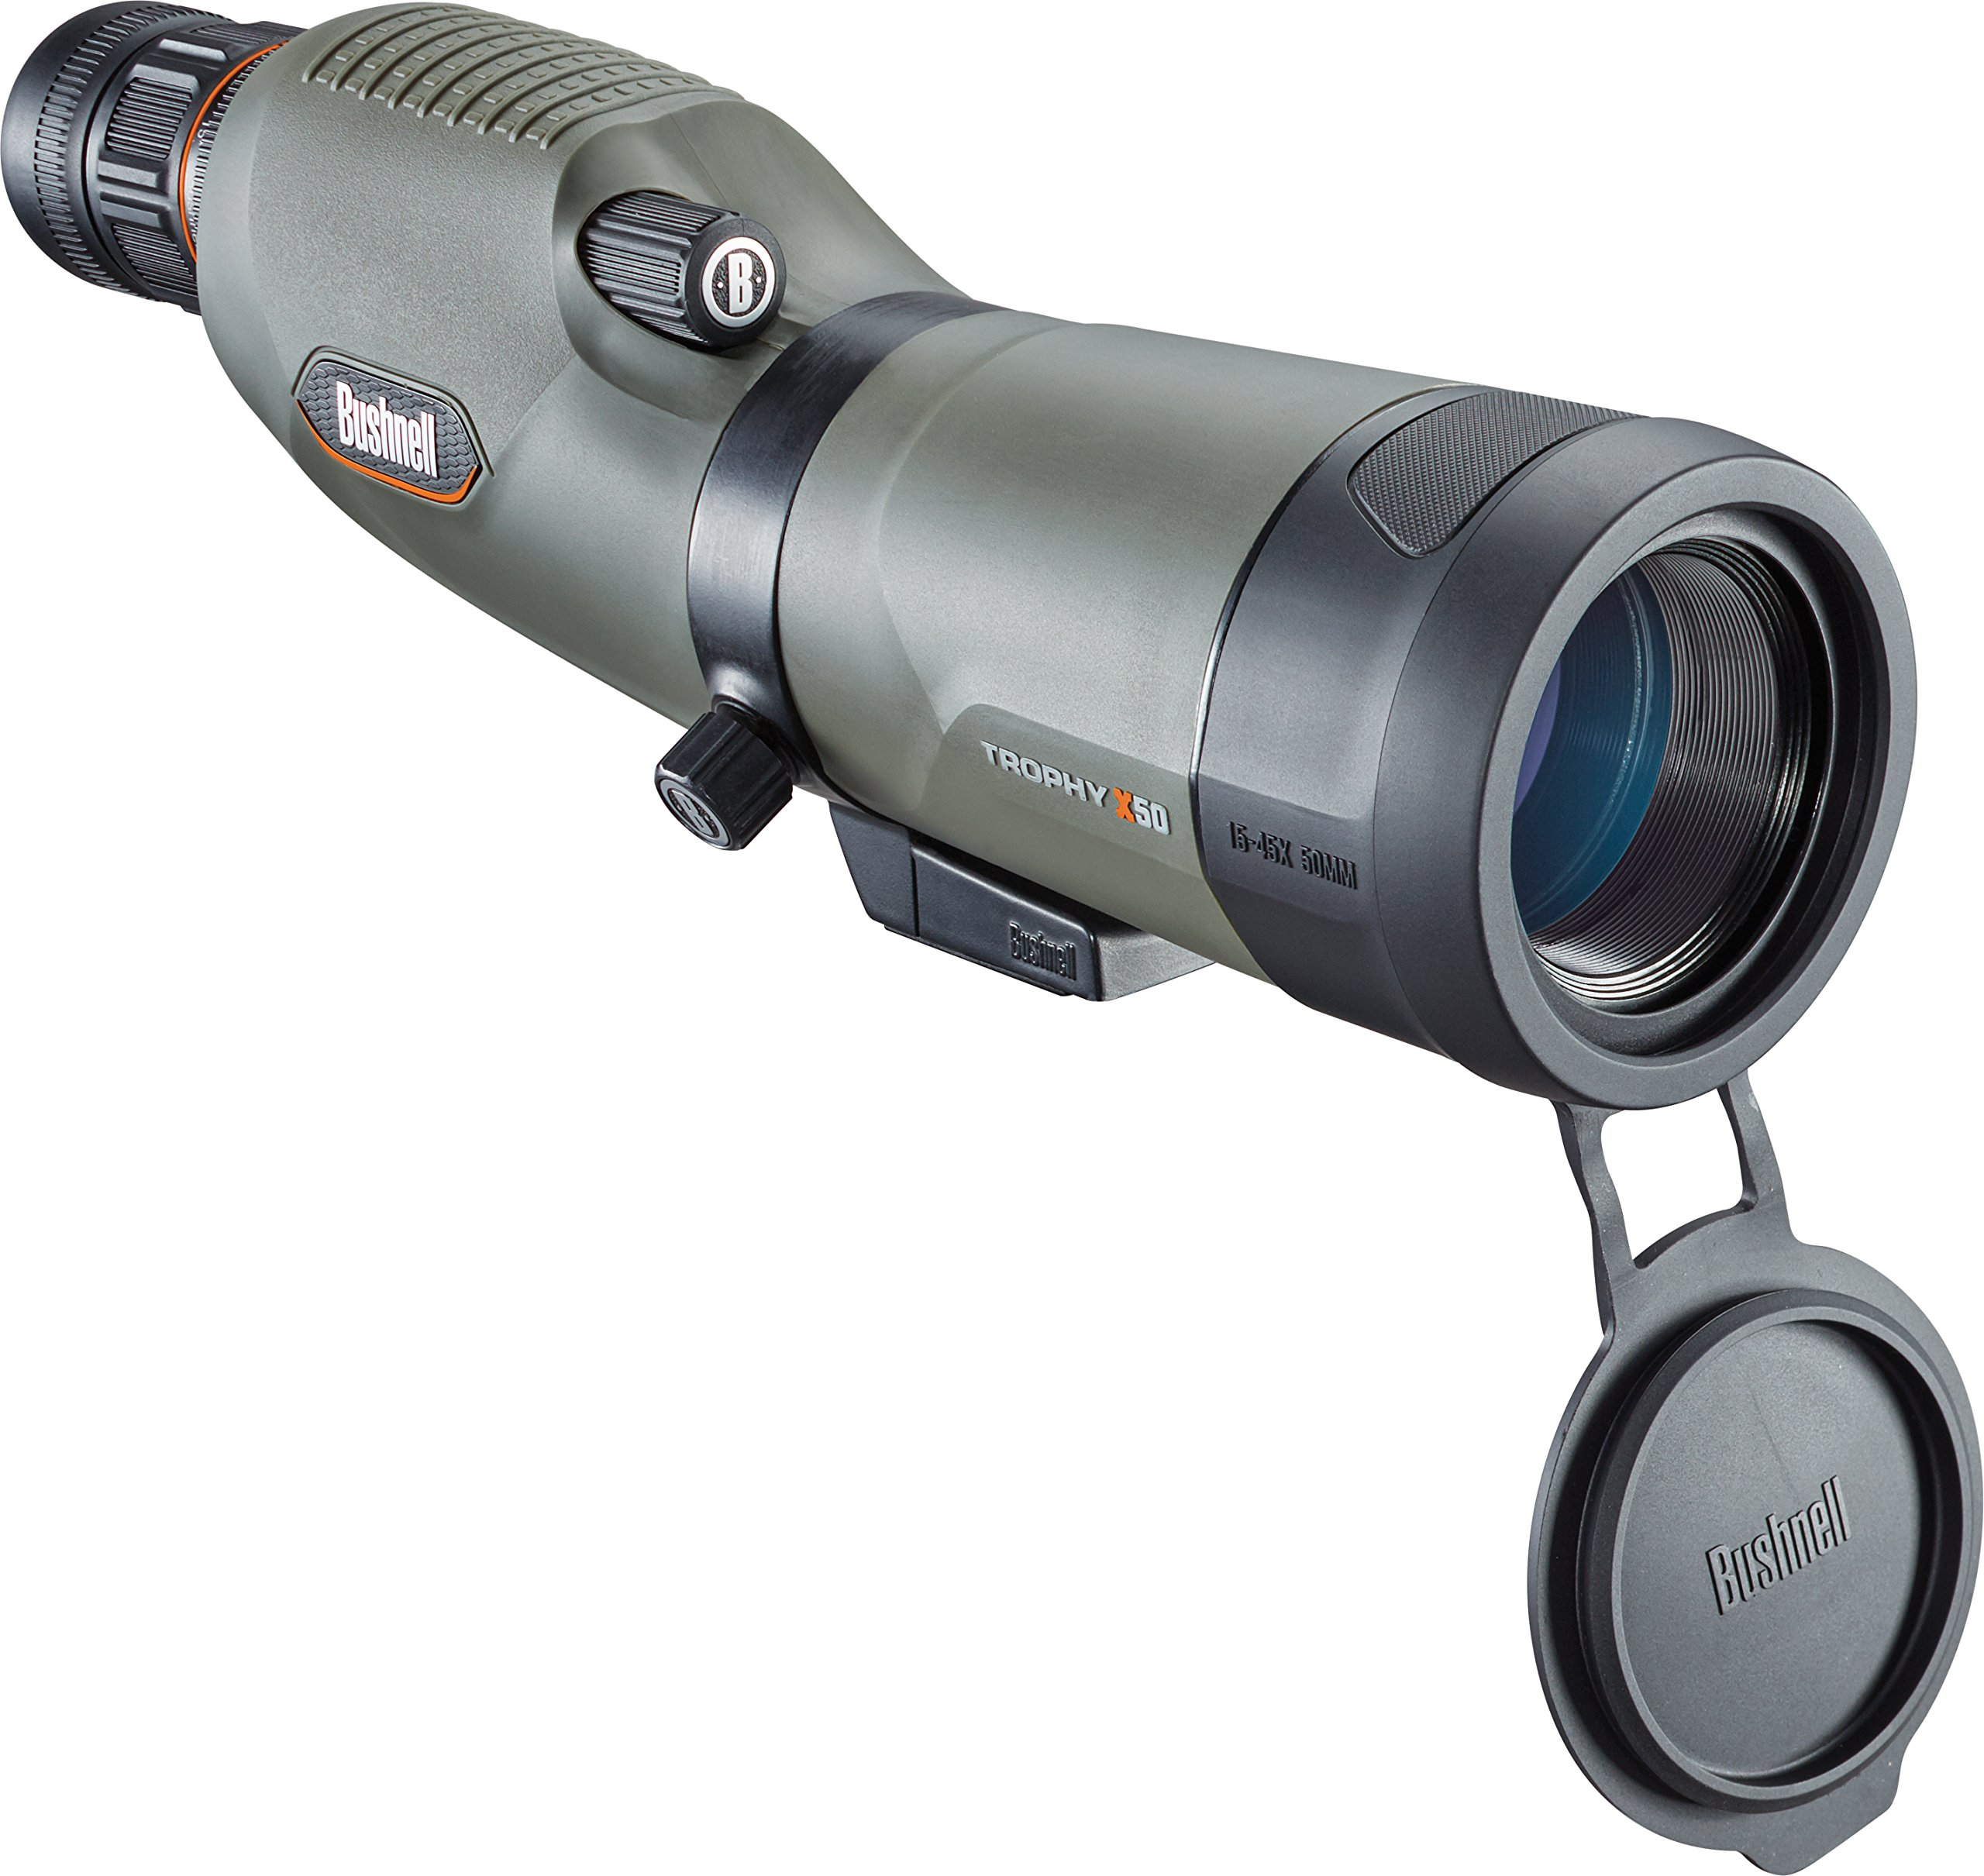 Bushnell Trophy Xtreme Spotting Scope, Green, 20-60 x 65mm by Bushnell (Image #4)